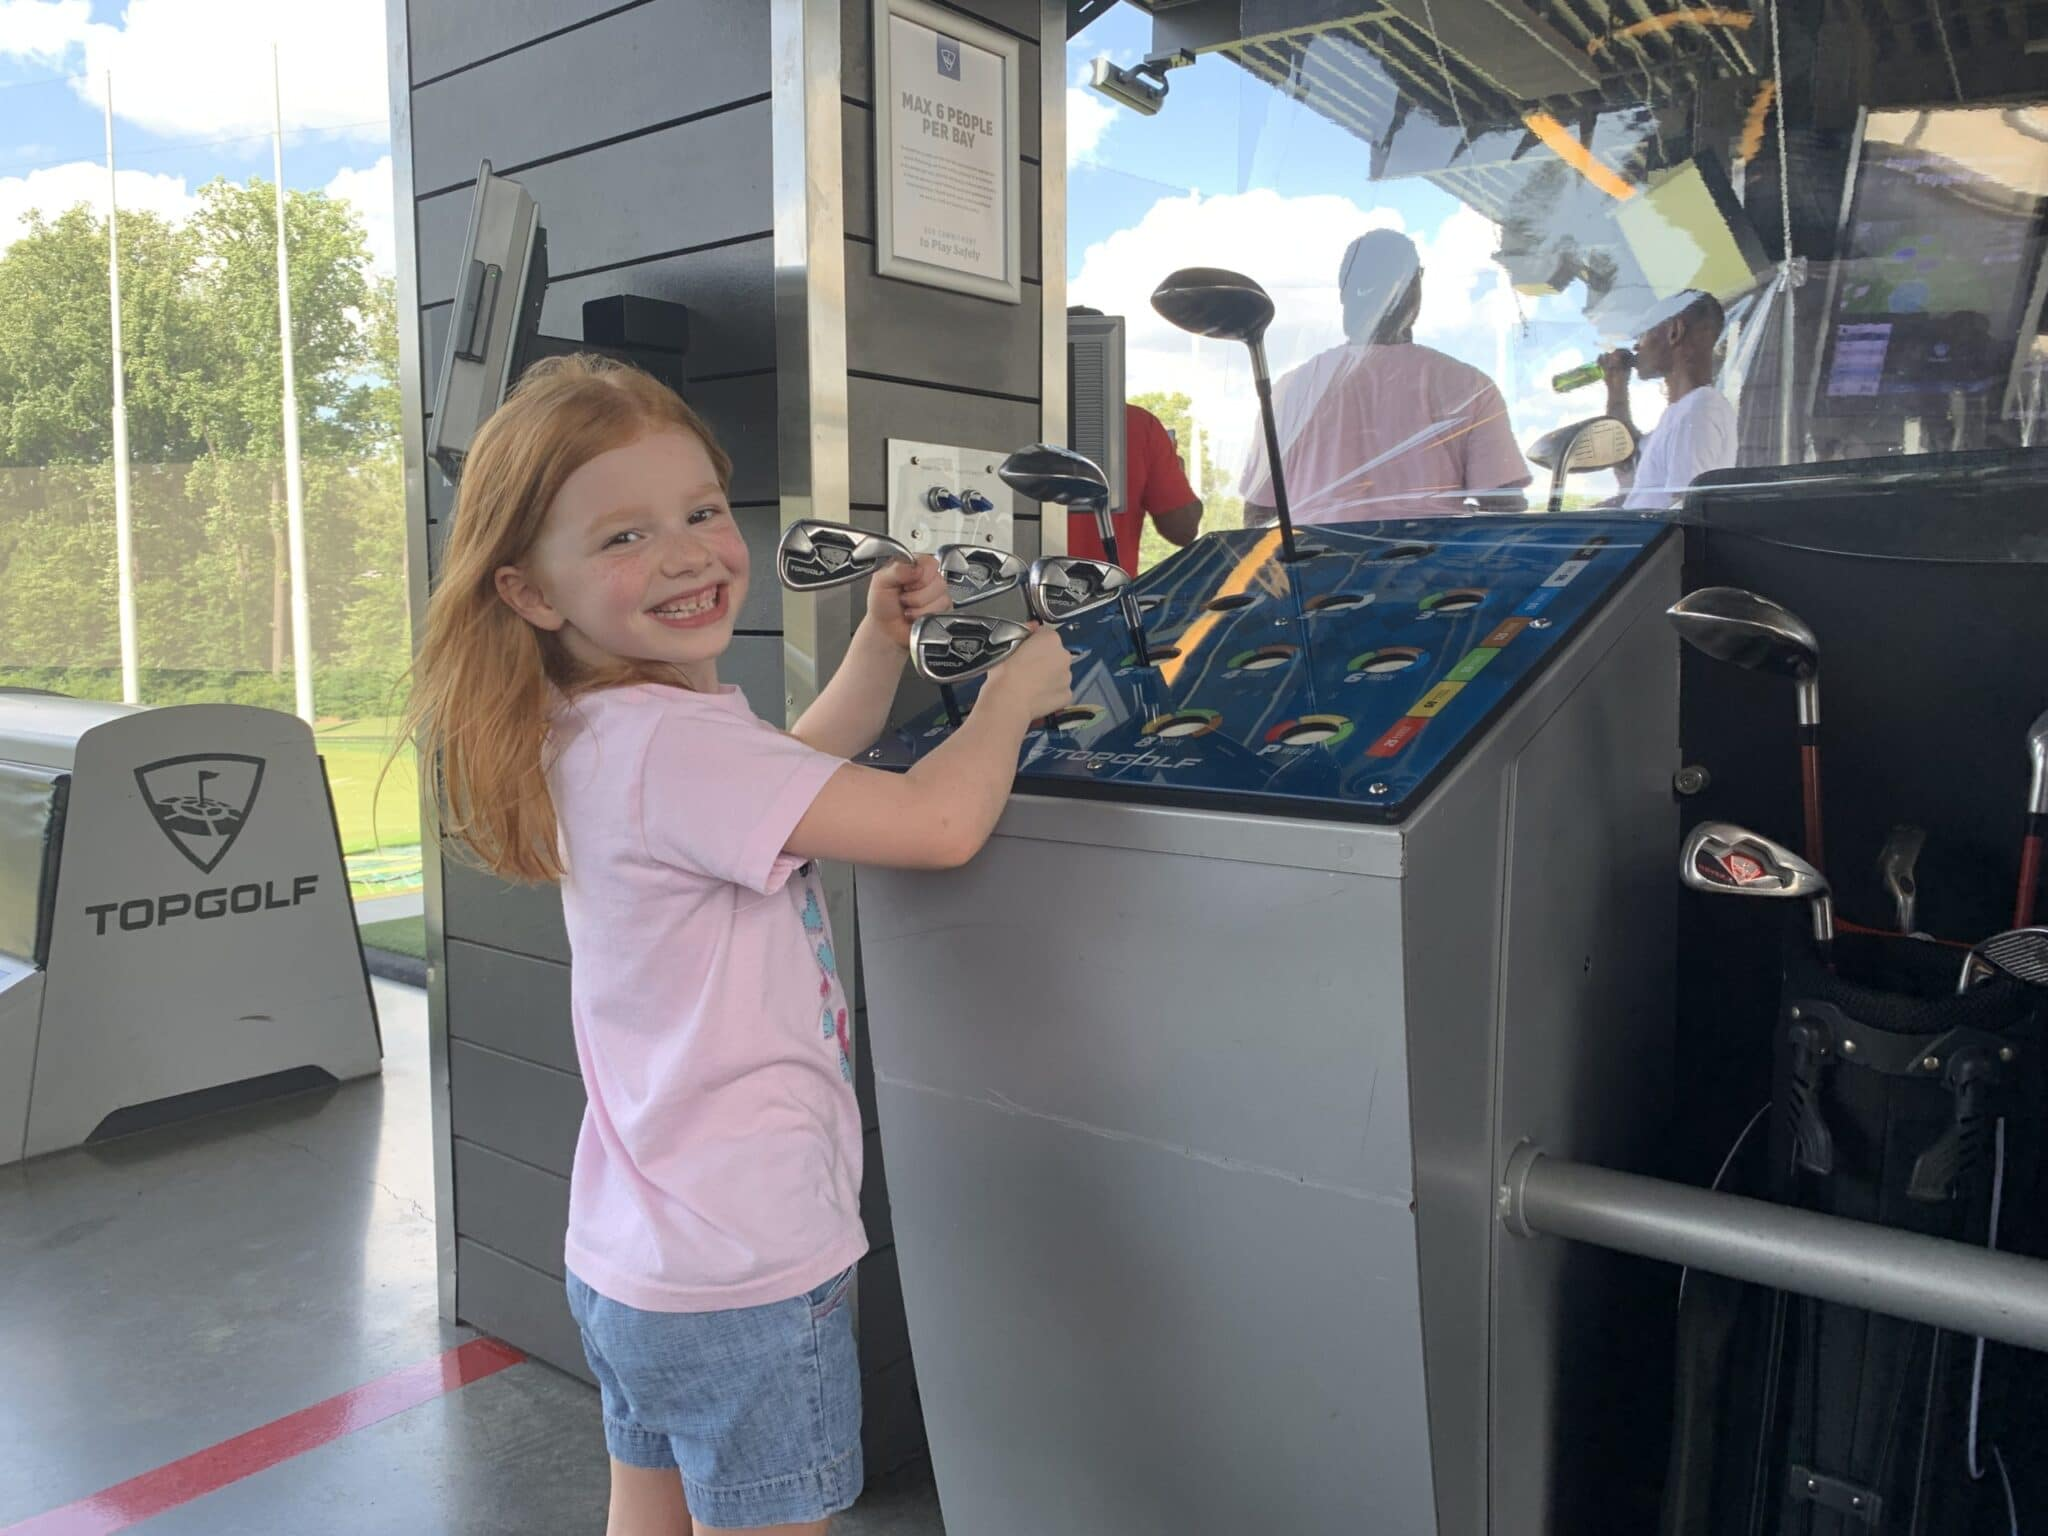 selecting a golf club at topgolf